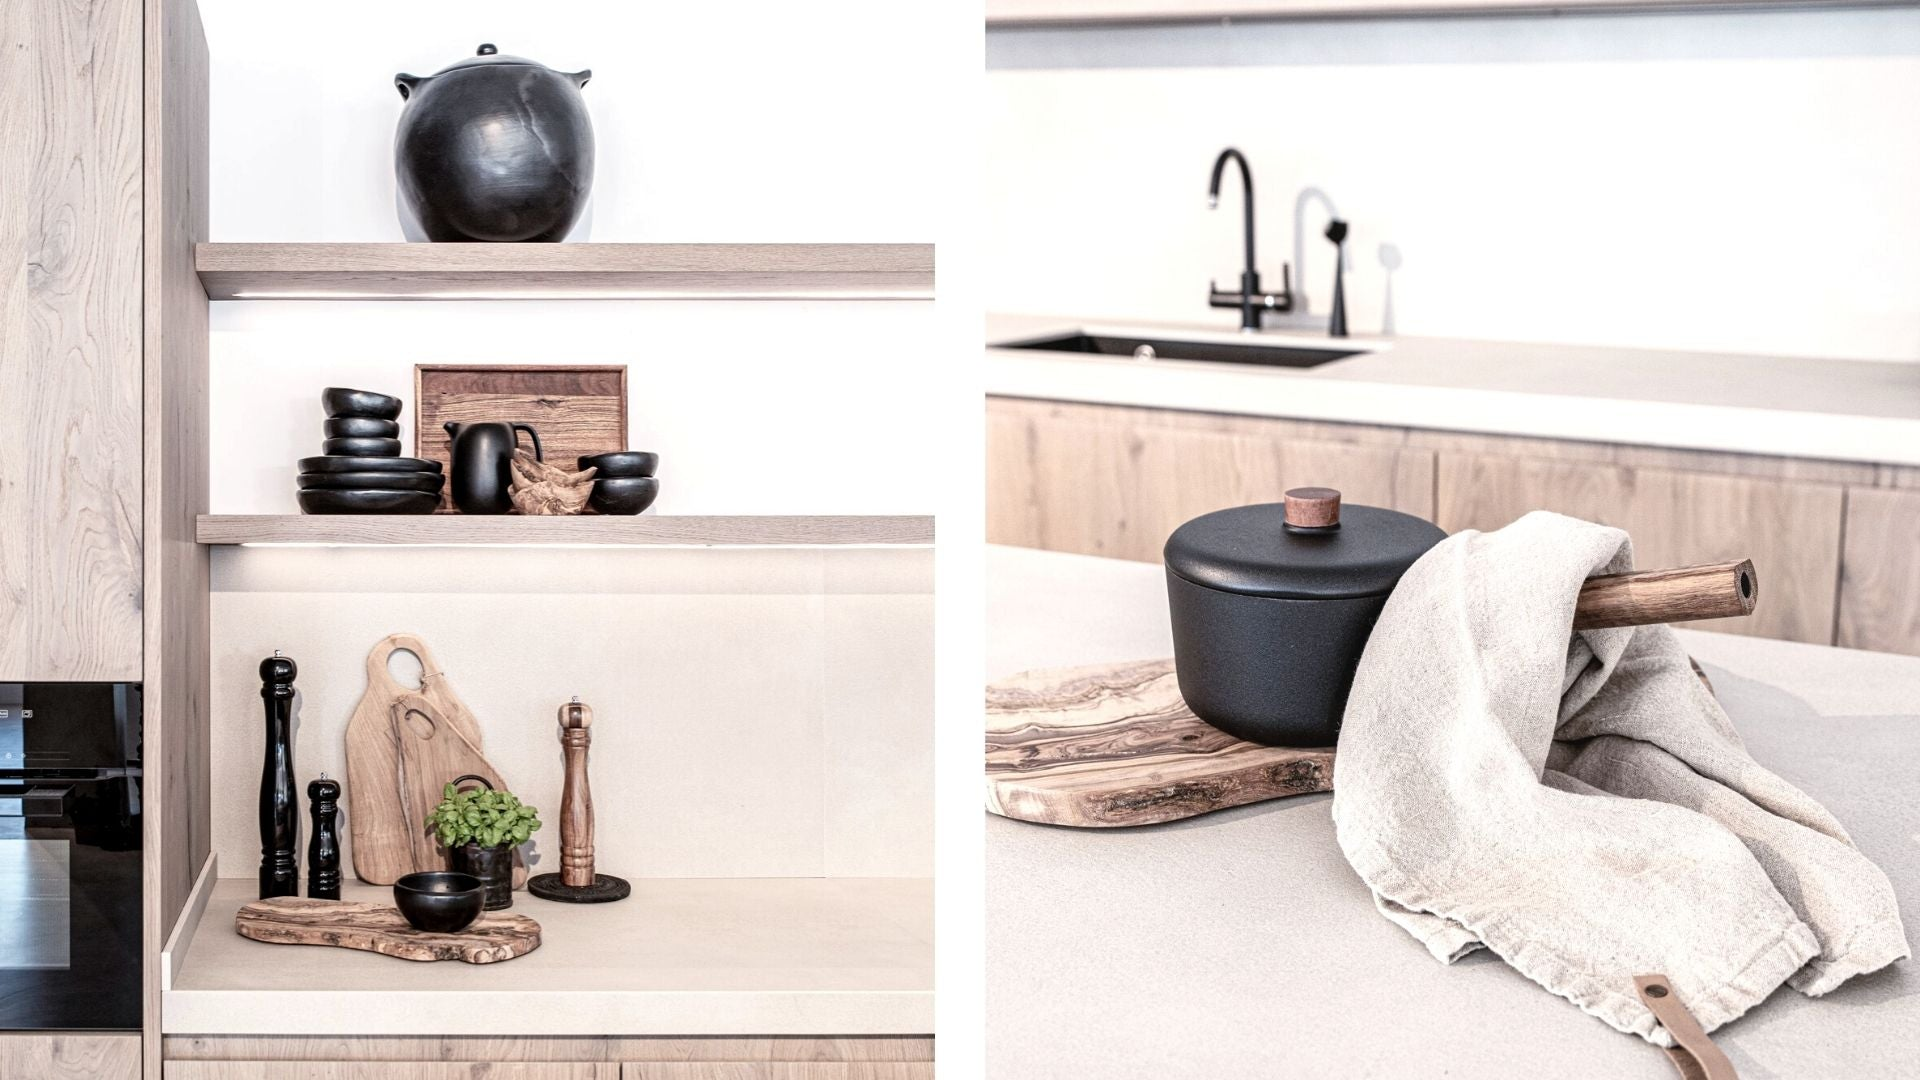 Zoco Home Kitchen Accessories and details